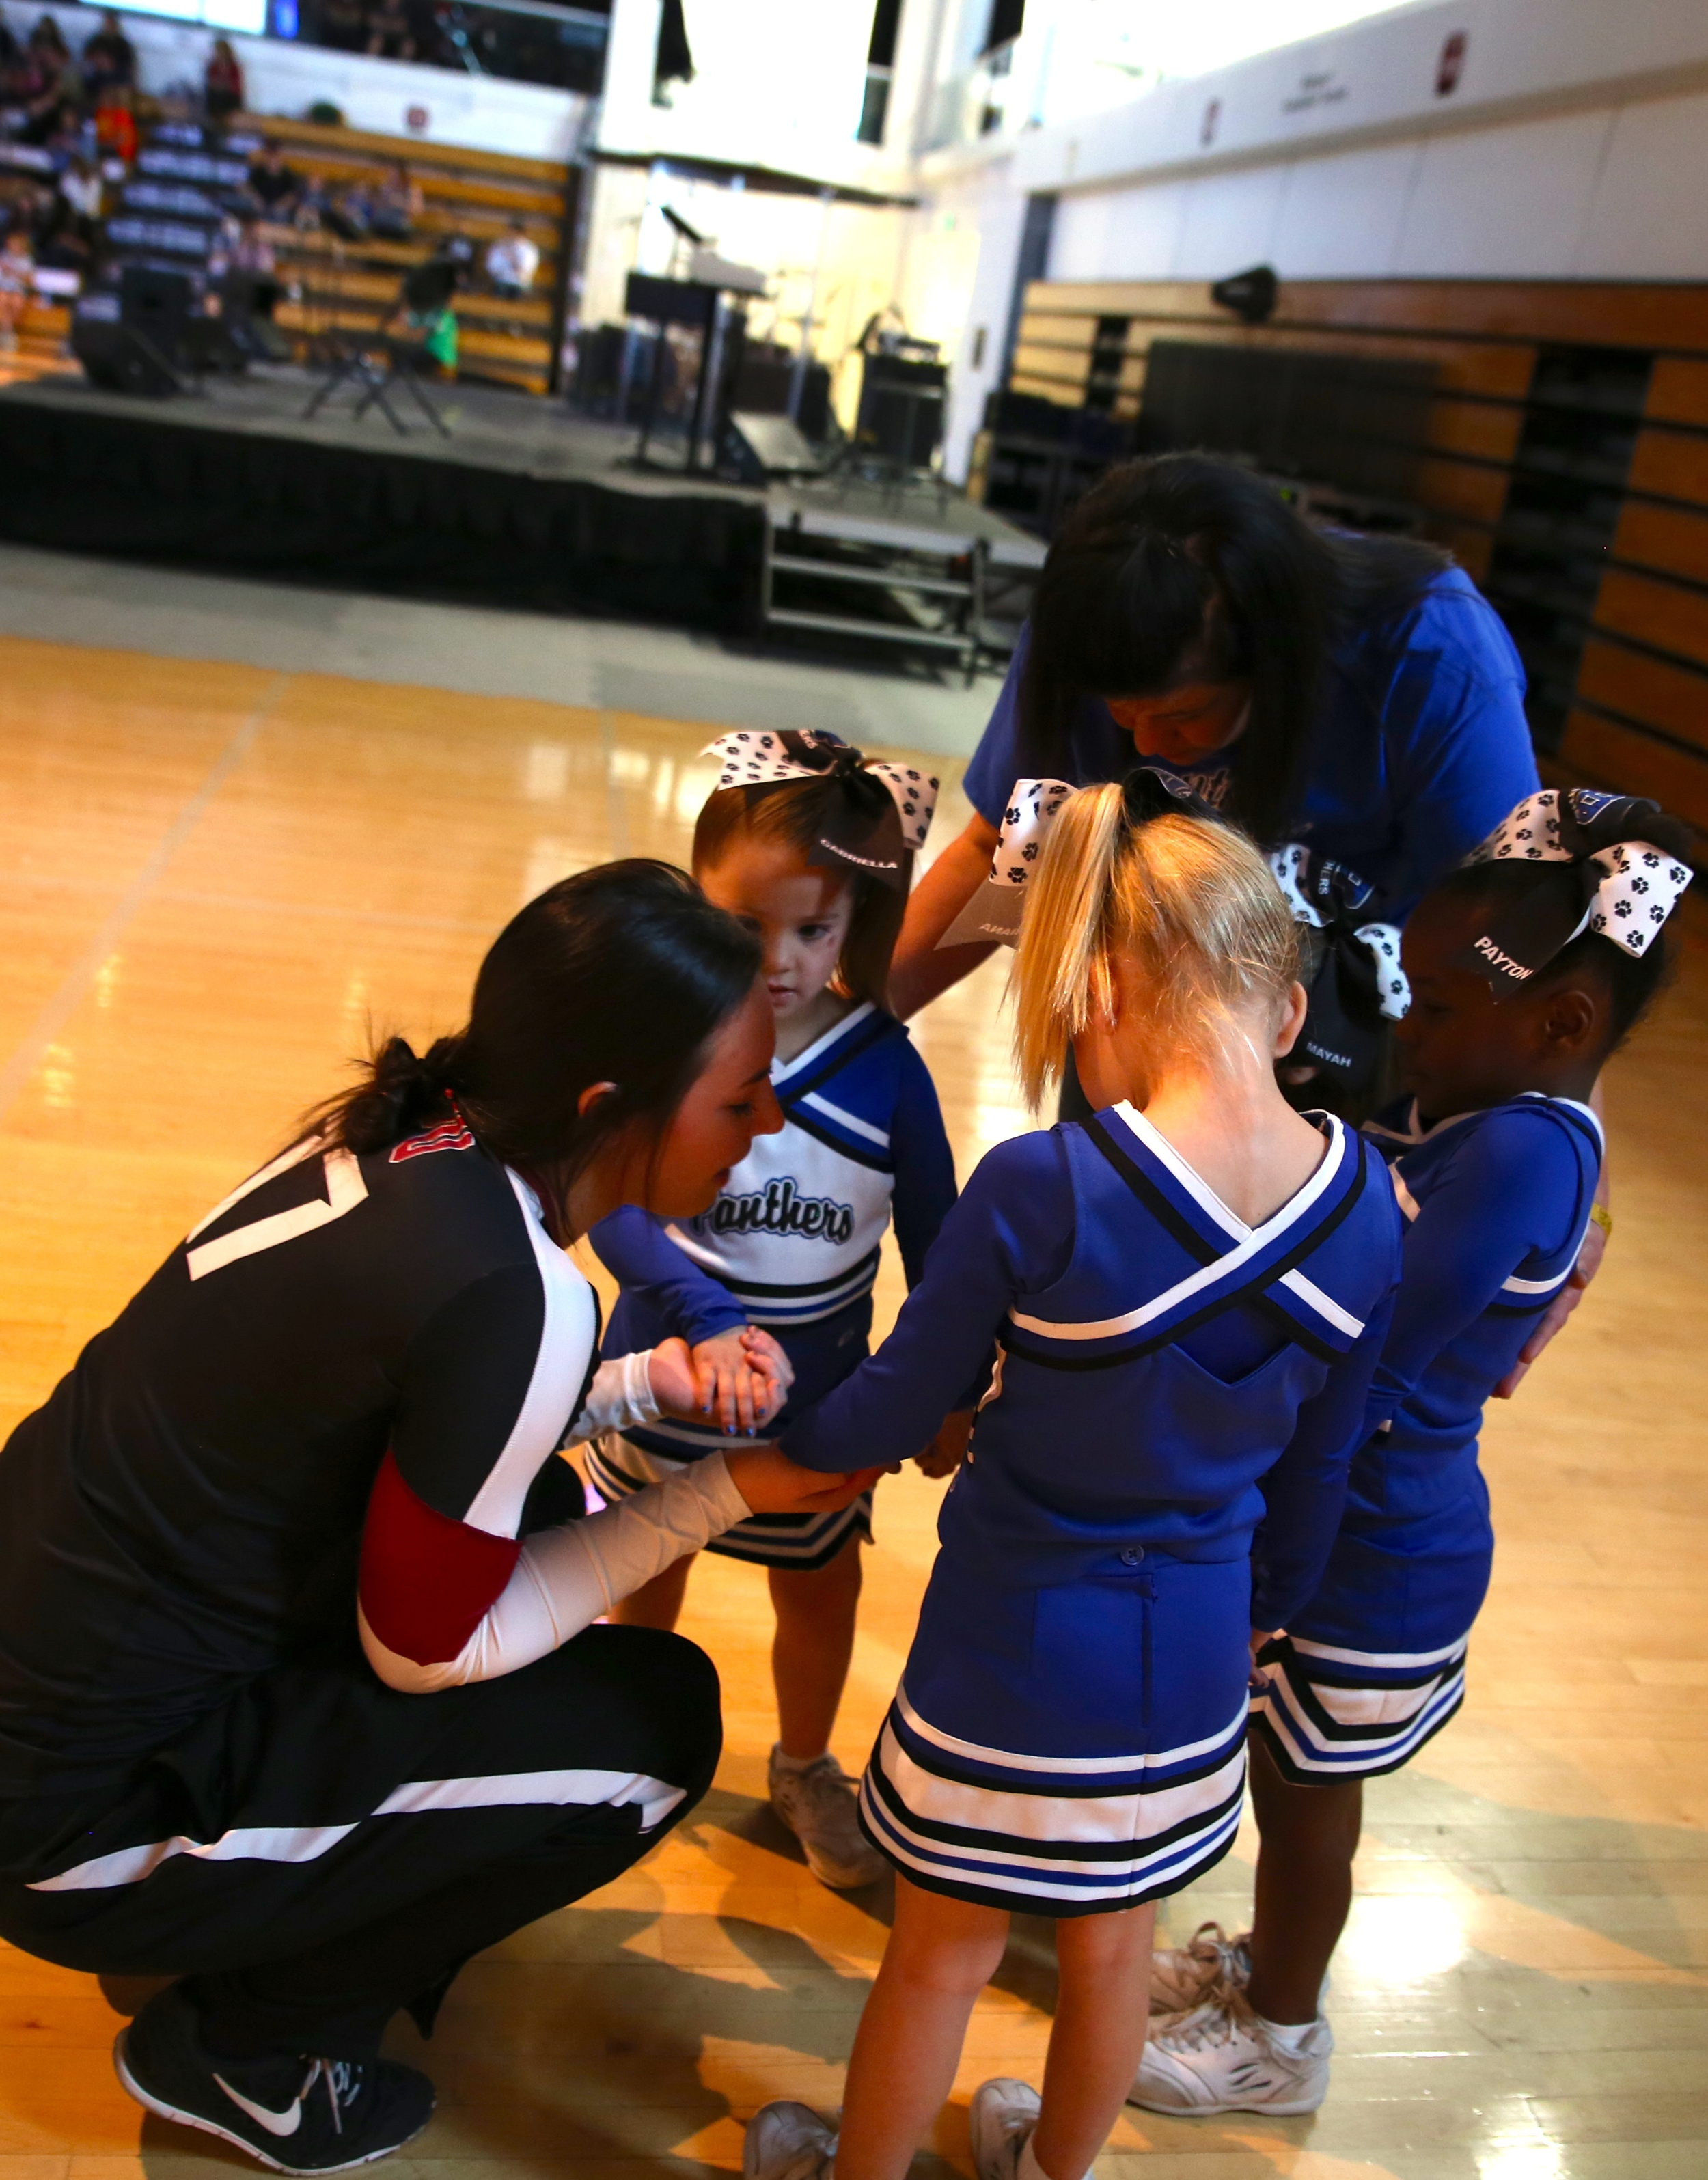 Coaches and staff praying with their girls before heading out onto the floor to compete. Cheering with a higher purpose.